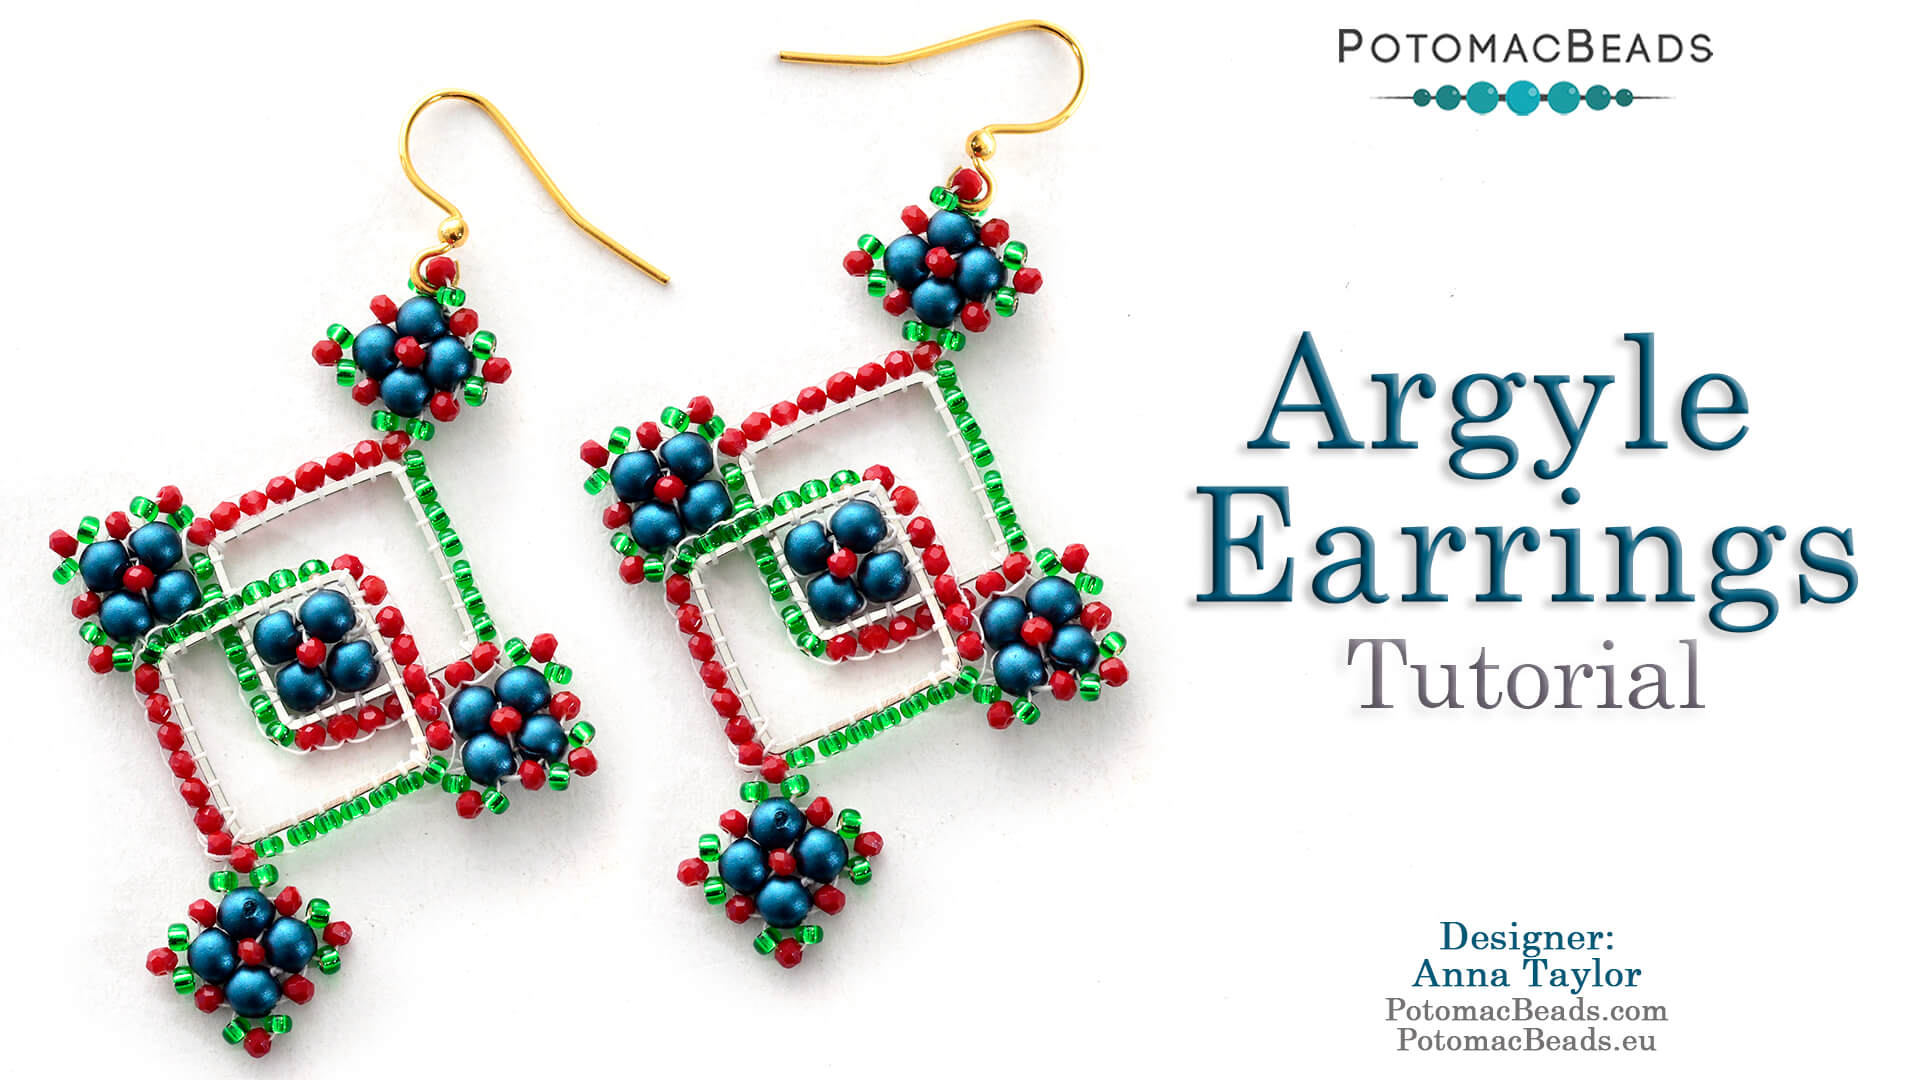 How to Bead / Videos Sorted by Beads / Potomac Crystal Videos / Argyle Earrings Tutorial